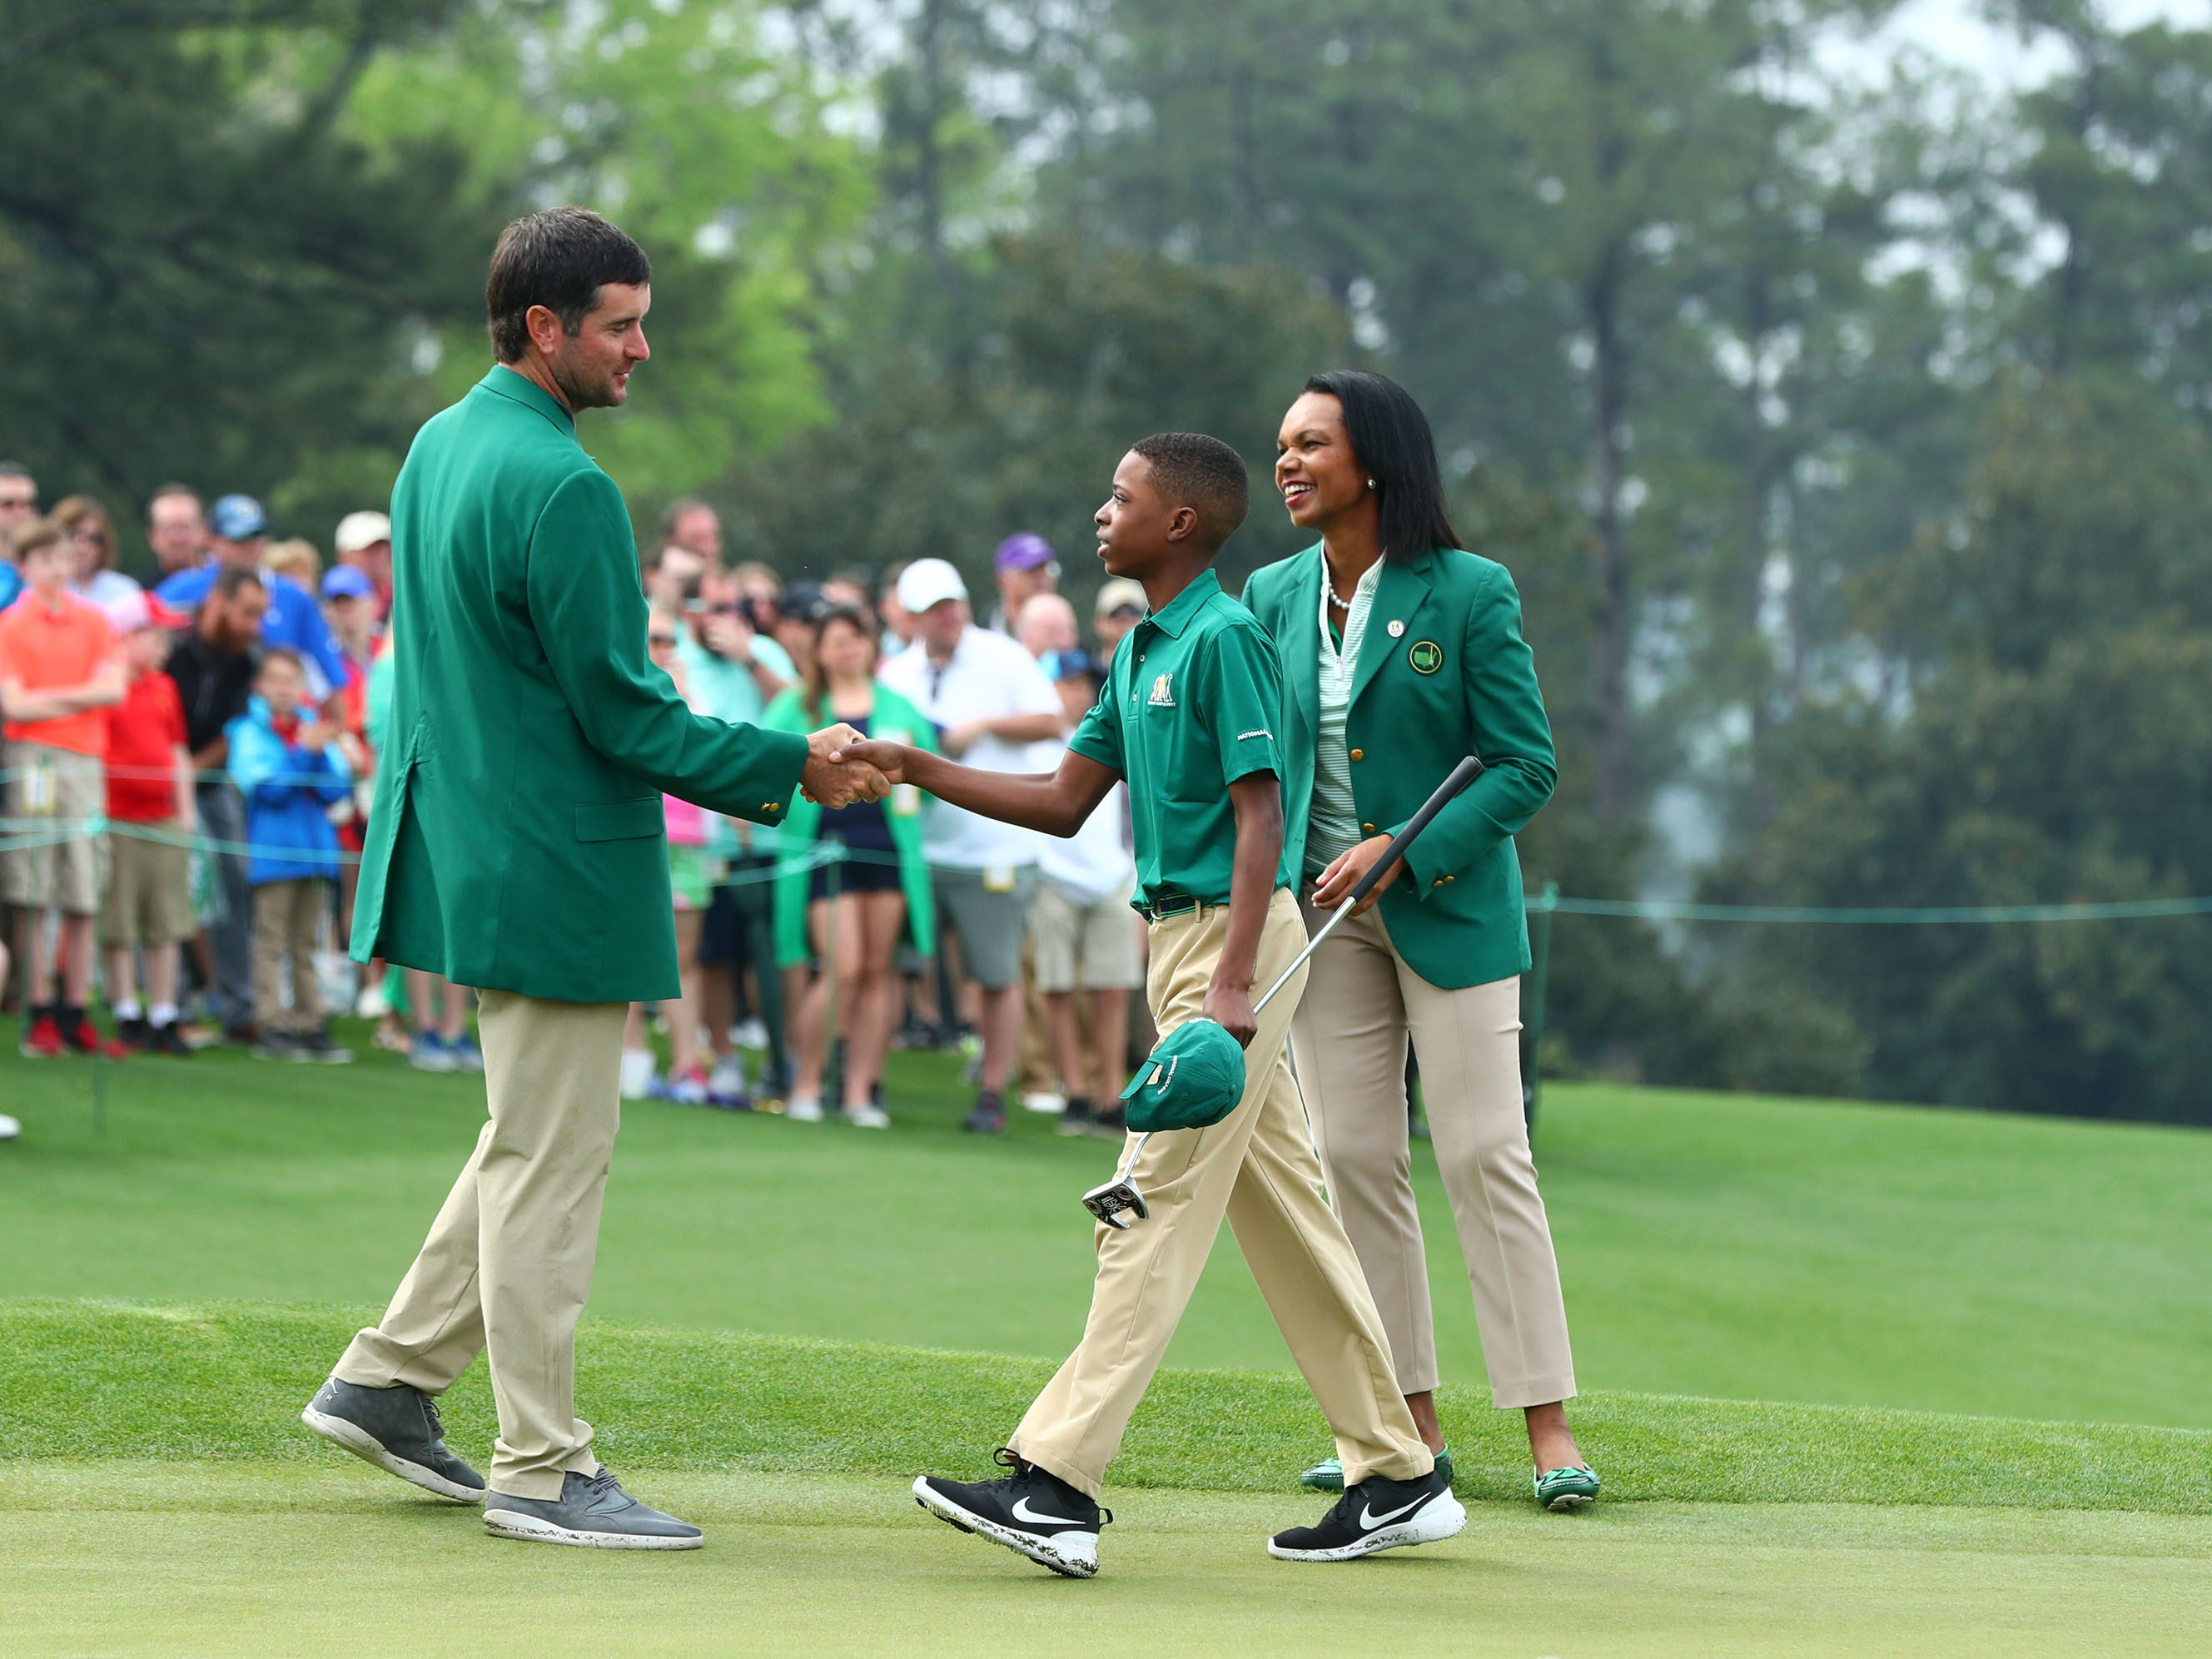 Apr 7, 2019; Augusta, GA, USA; Masters champion and Augusta National member Condoleezza Rice congratulate overall championÊMatthew Vital of Bethlehem, PA.Êfor the boys 11-12 age group during the finals of the Drive, Chip and Putt competition at Augusta National Golf Club. Mandatory Credit: Rob Schumacher-USA TODAY Sports